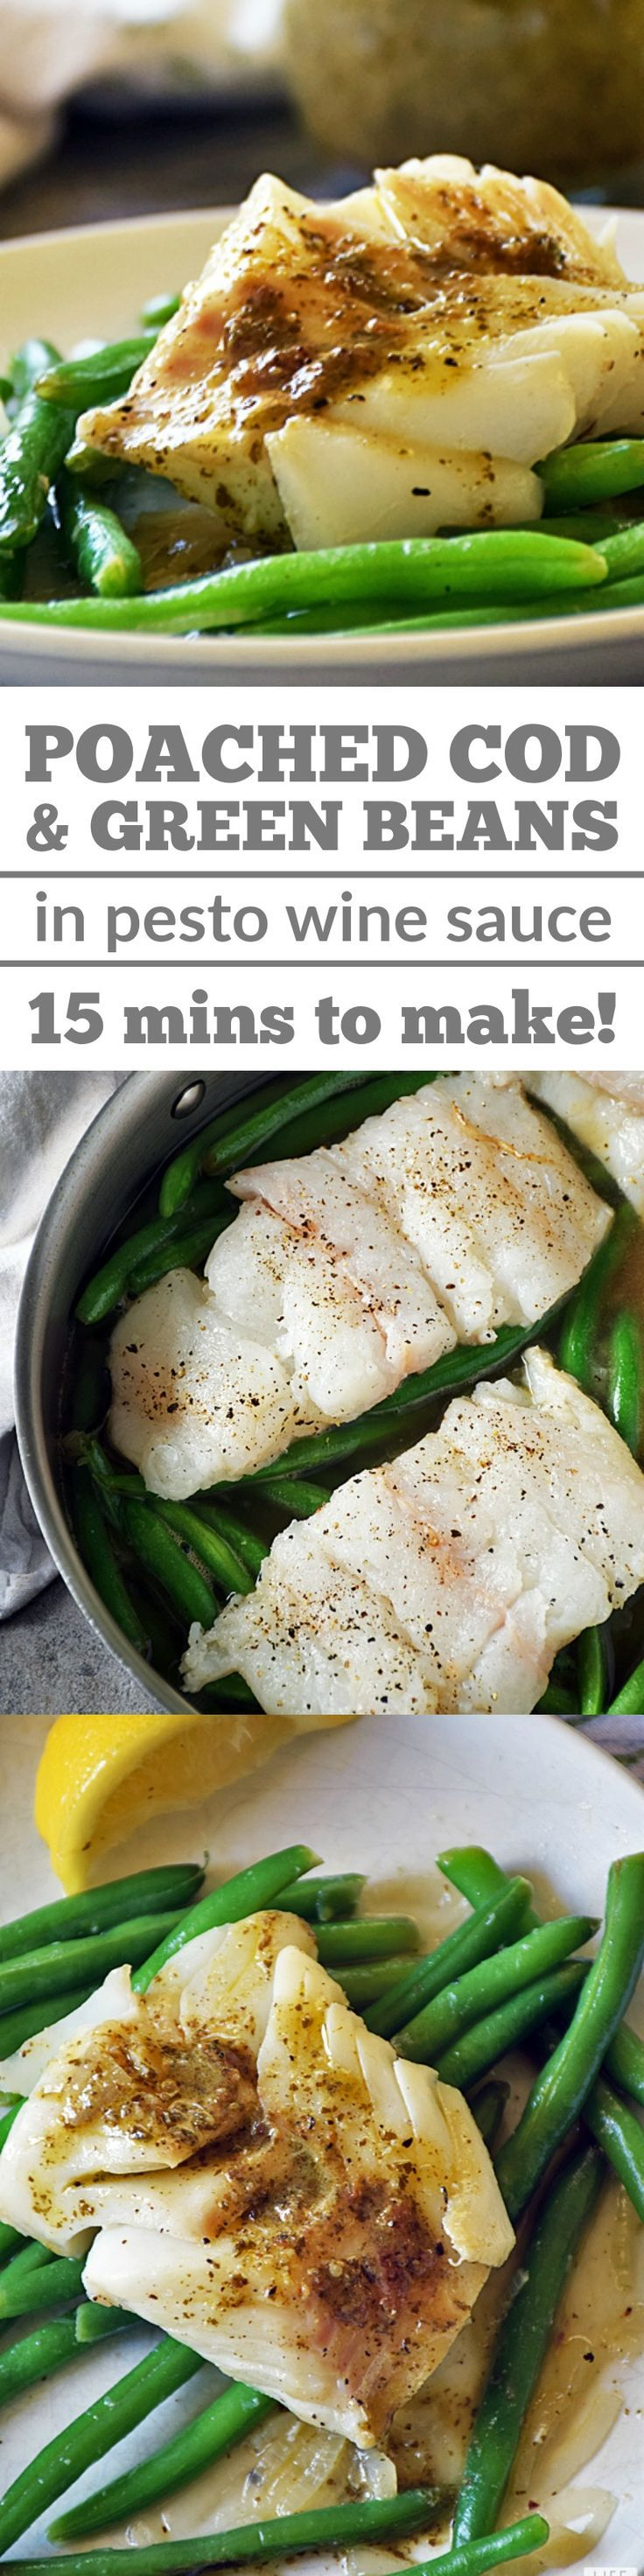 Poached Cod with Pesto Wine Sauce and green beans is the easiest recipe you're not making but definitely should be. In addition to cooking in one skillet and on the table in just 15 minutes from start to finish, this recipe is also good for you and packs a big flavor punch! Perfect fish meal to eat on Good Friday & fun healthy green recipe for St. Patrick's Day!